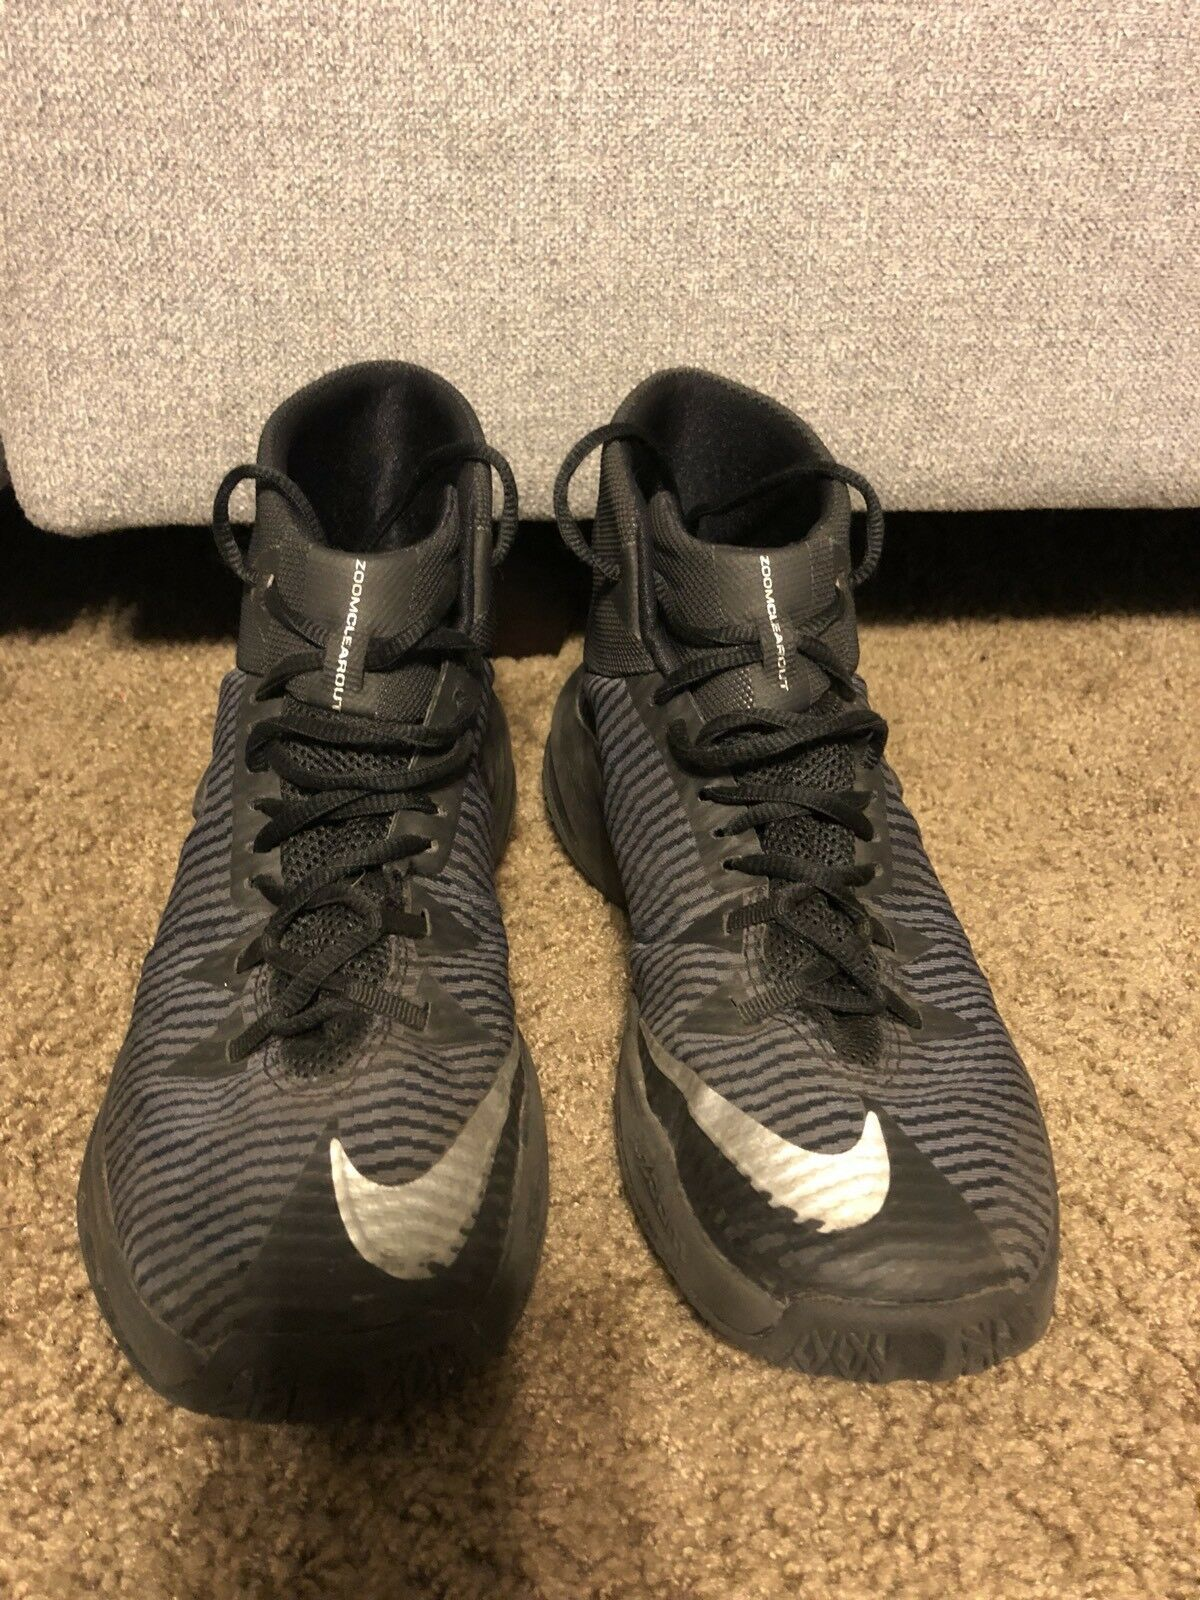 0bf72fbeb96a Nike Men's Zoom Clear Out Black/Silver Basketball Shoes Shoes Shoes  844370-001 Sz